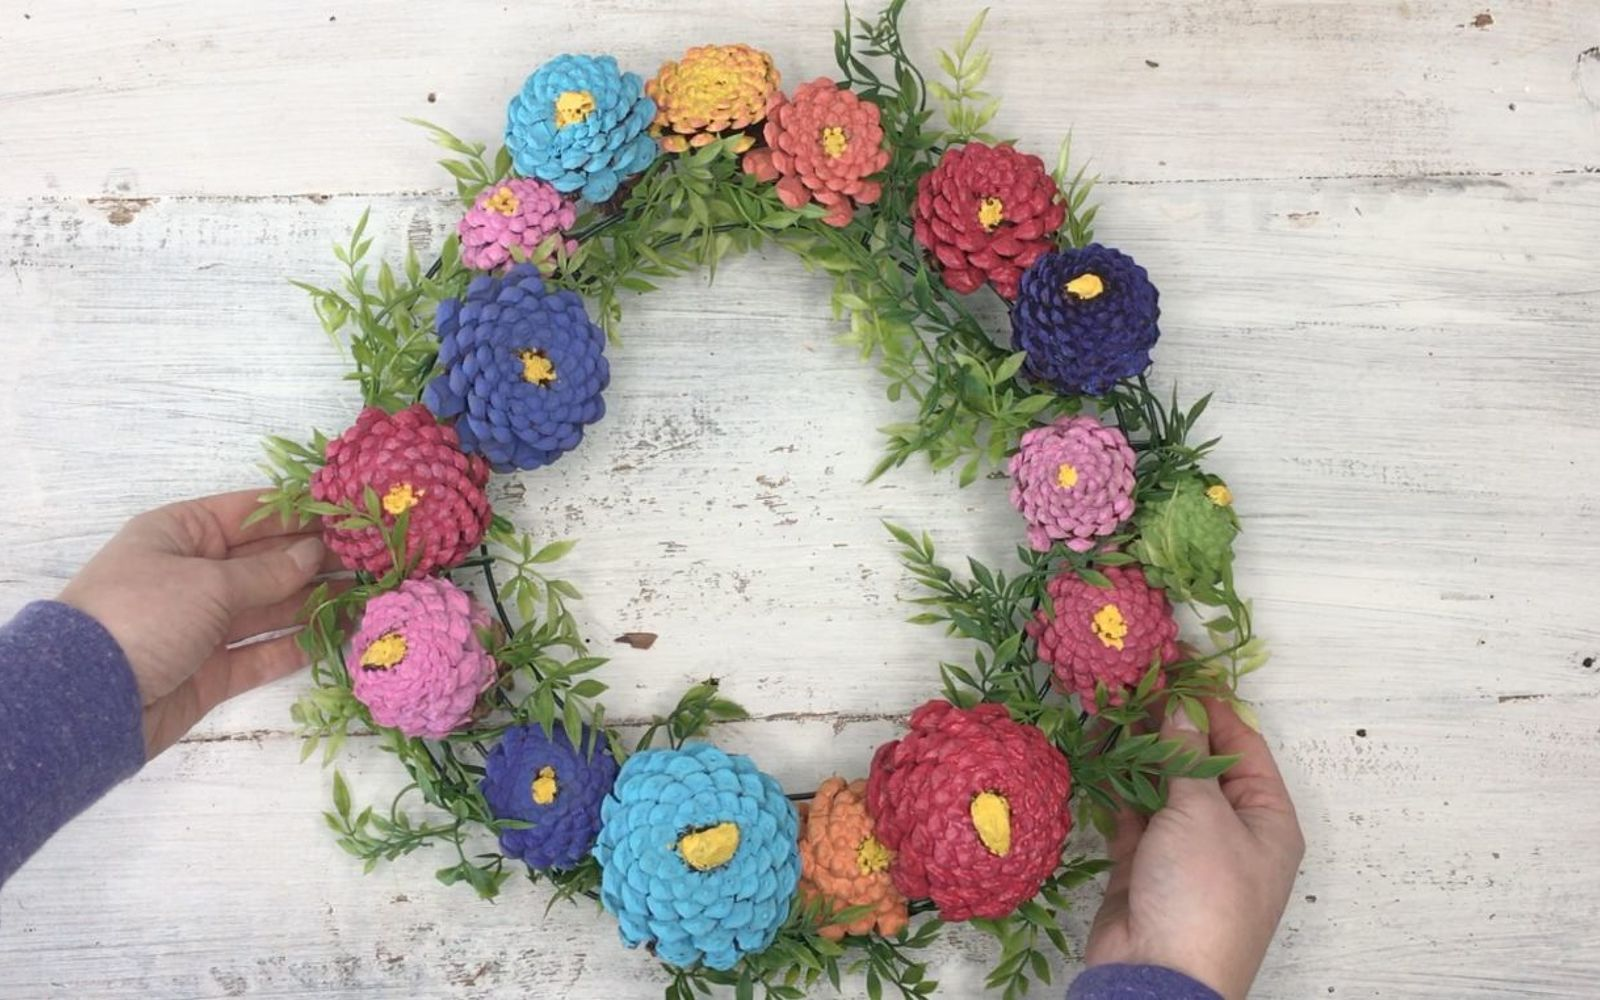 s 3 wreath ideas to brighten up your front door, Step 7 Hang the wreath on your door